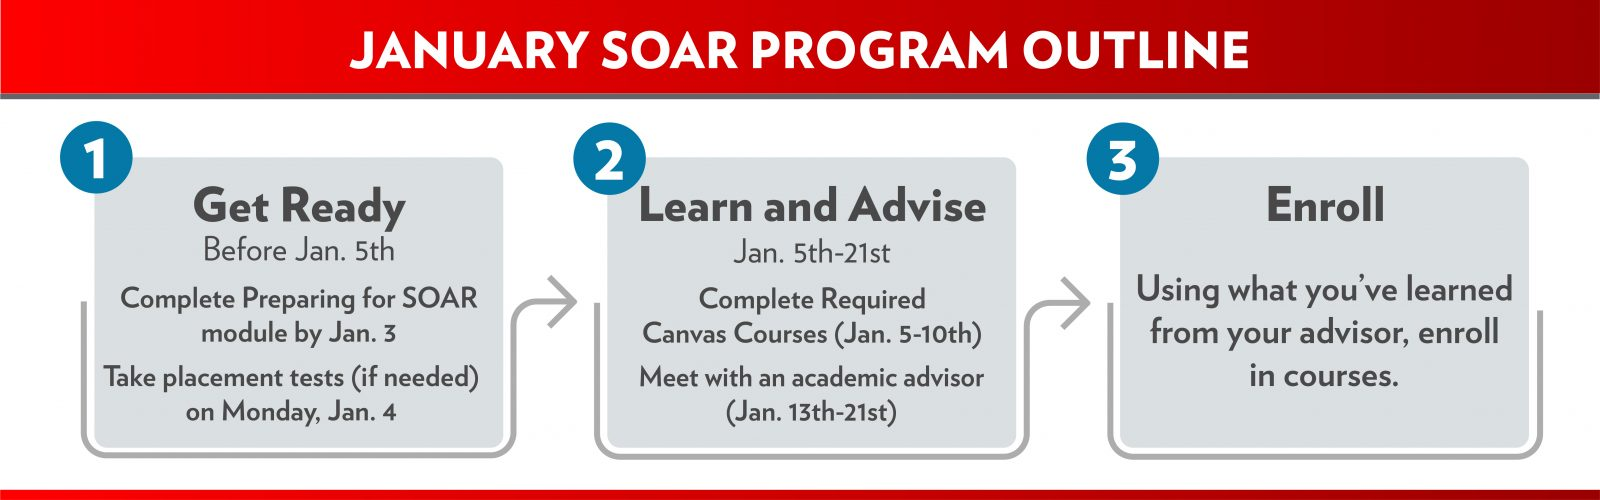 A visual of the student SOAR process that is described in the page text below